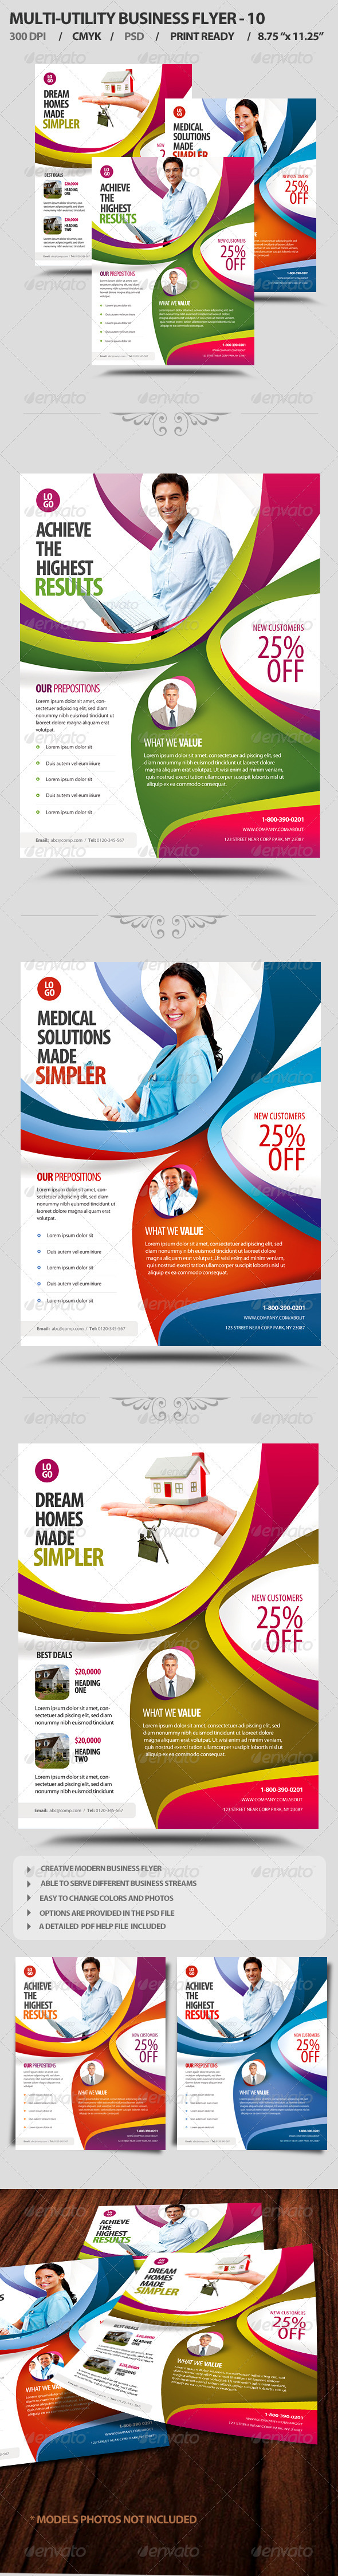 Multi-Utility Business Flyer 10 - Corporate Flyers